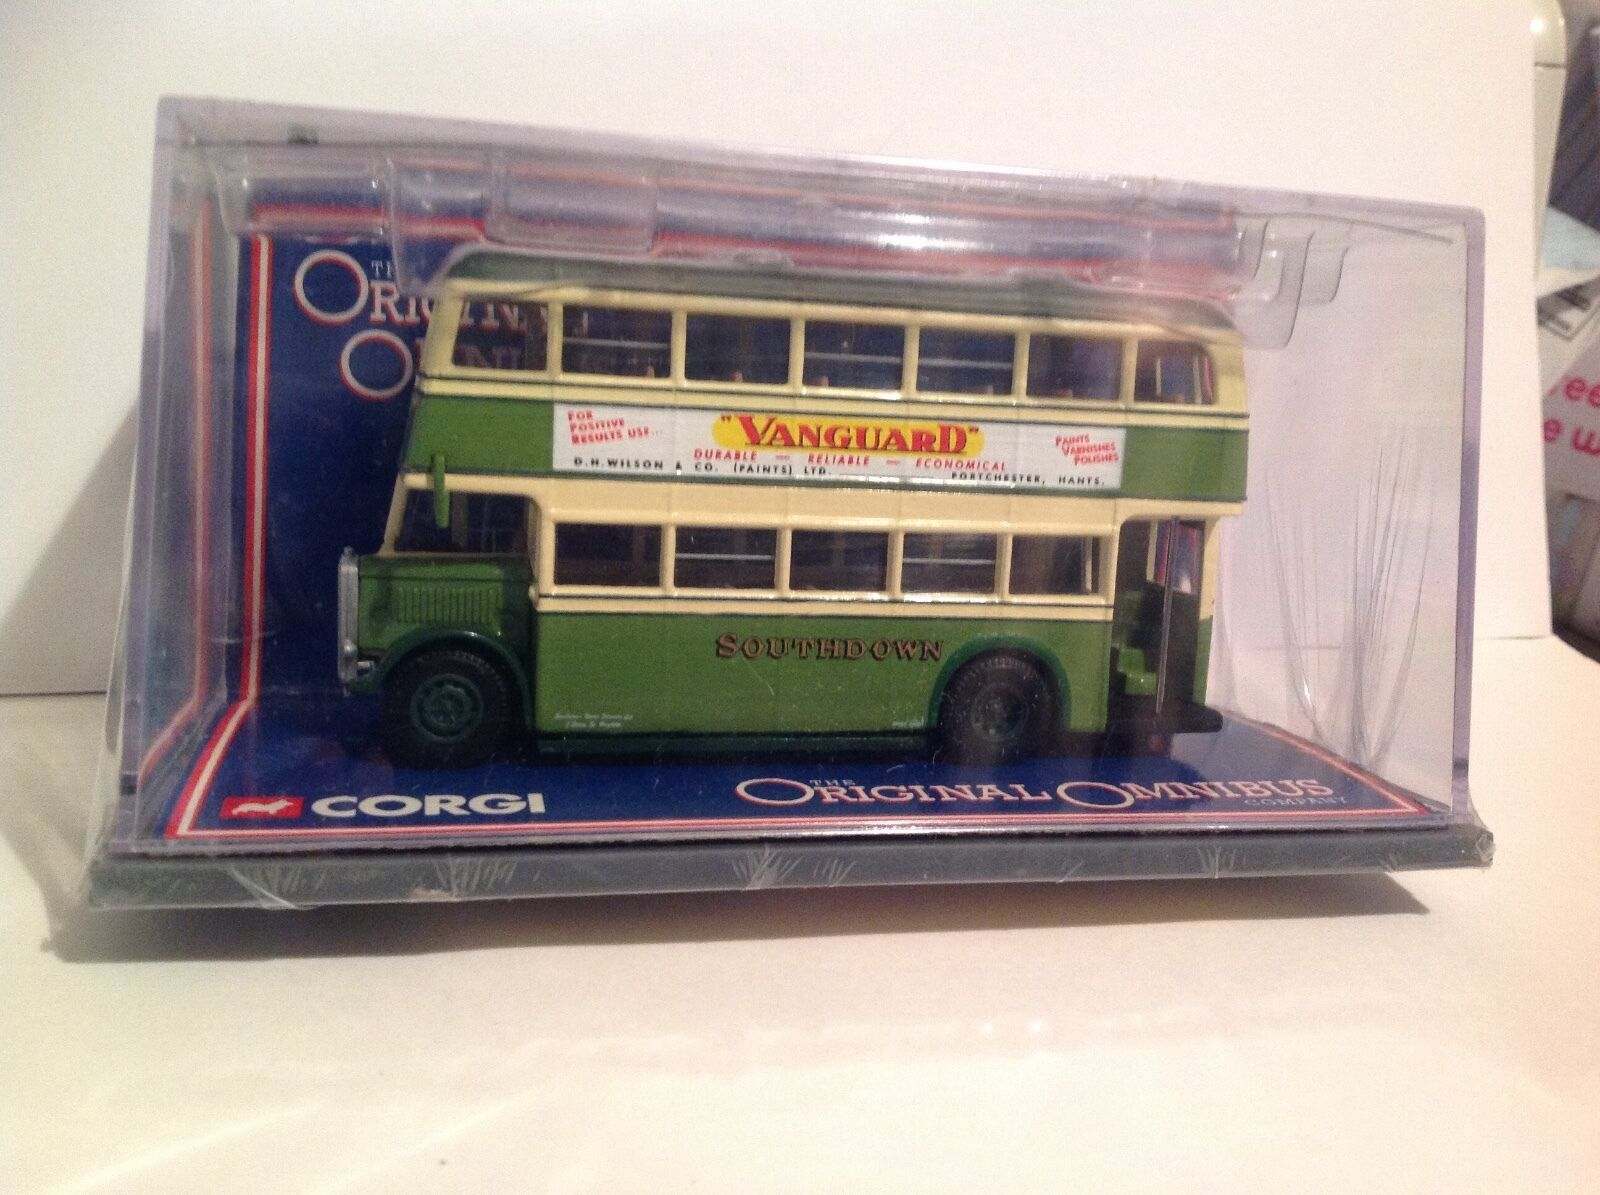 OM43906 Guy Arab Utility Bus Southdown Motor Services  LDT 0007 of 6800